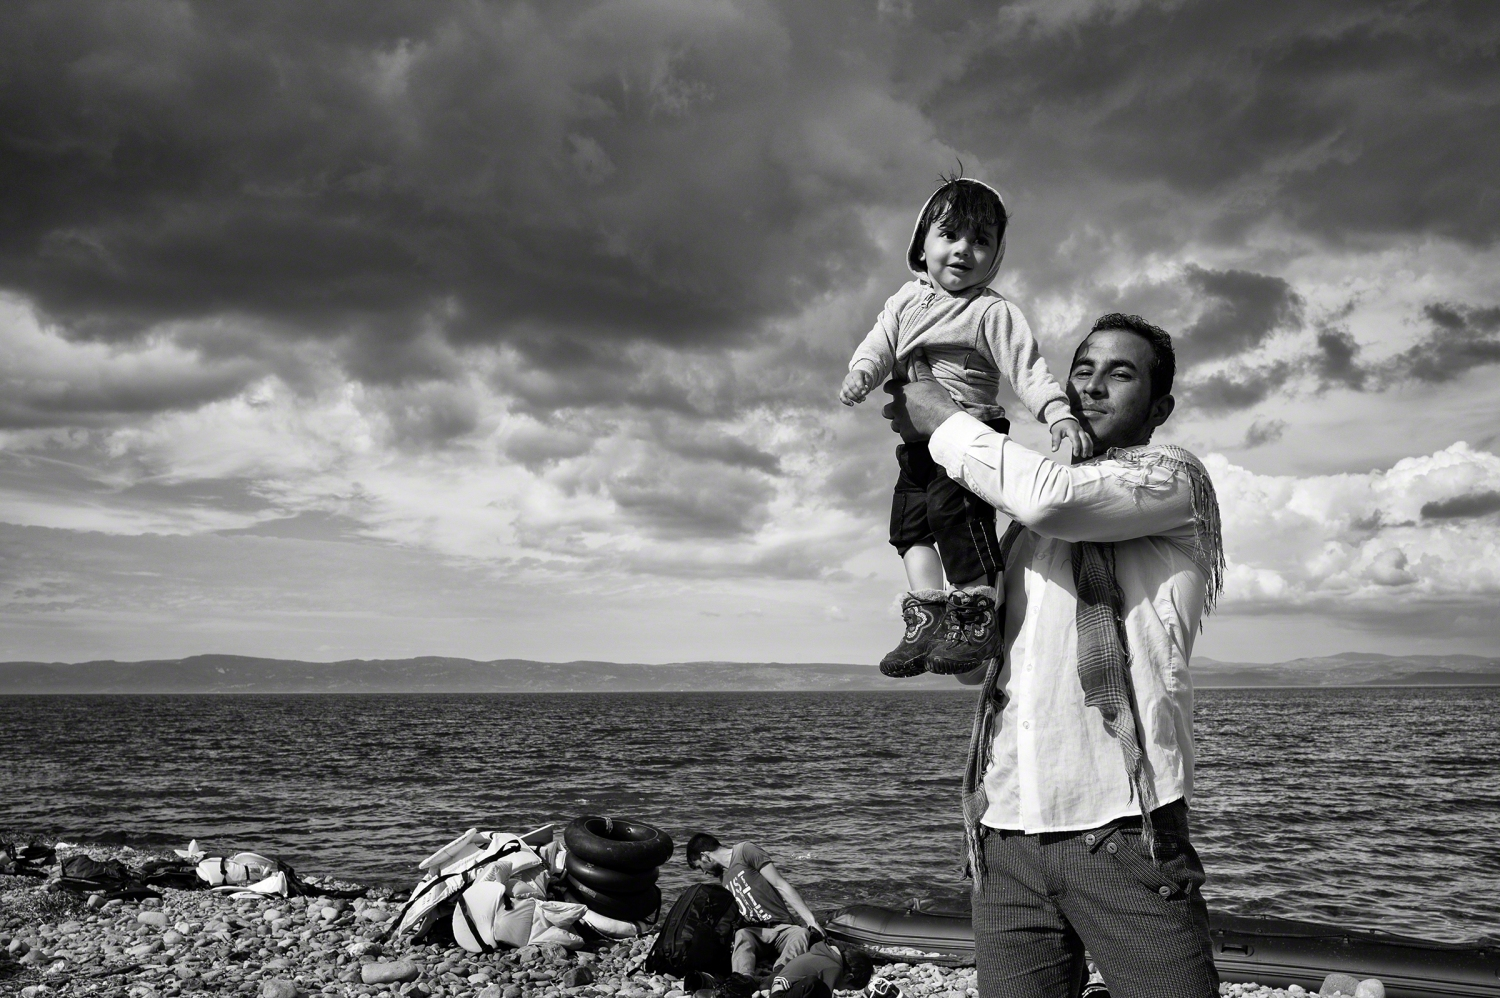 A black and white photograph of a father raising his young child to celebrate his family's safe passage to Lesbos after crossing over the Aegean Sea from Turkey